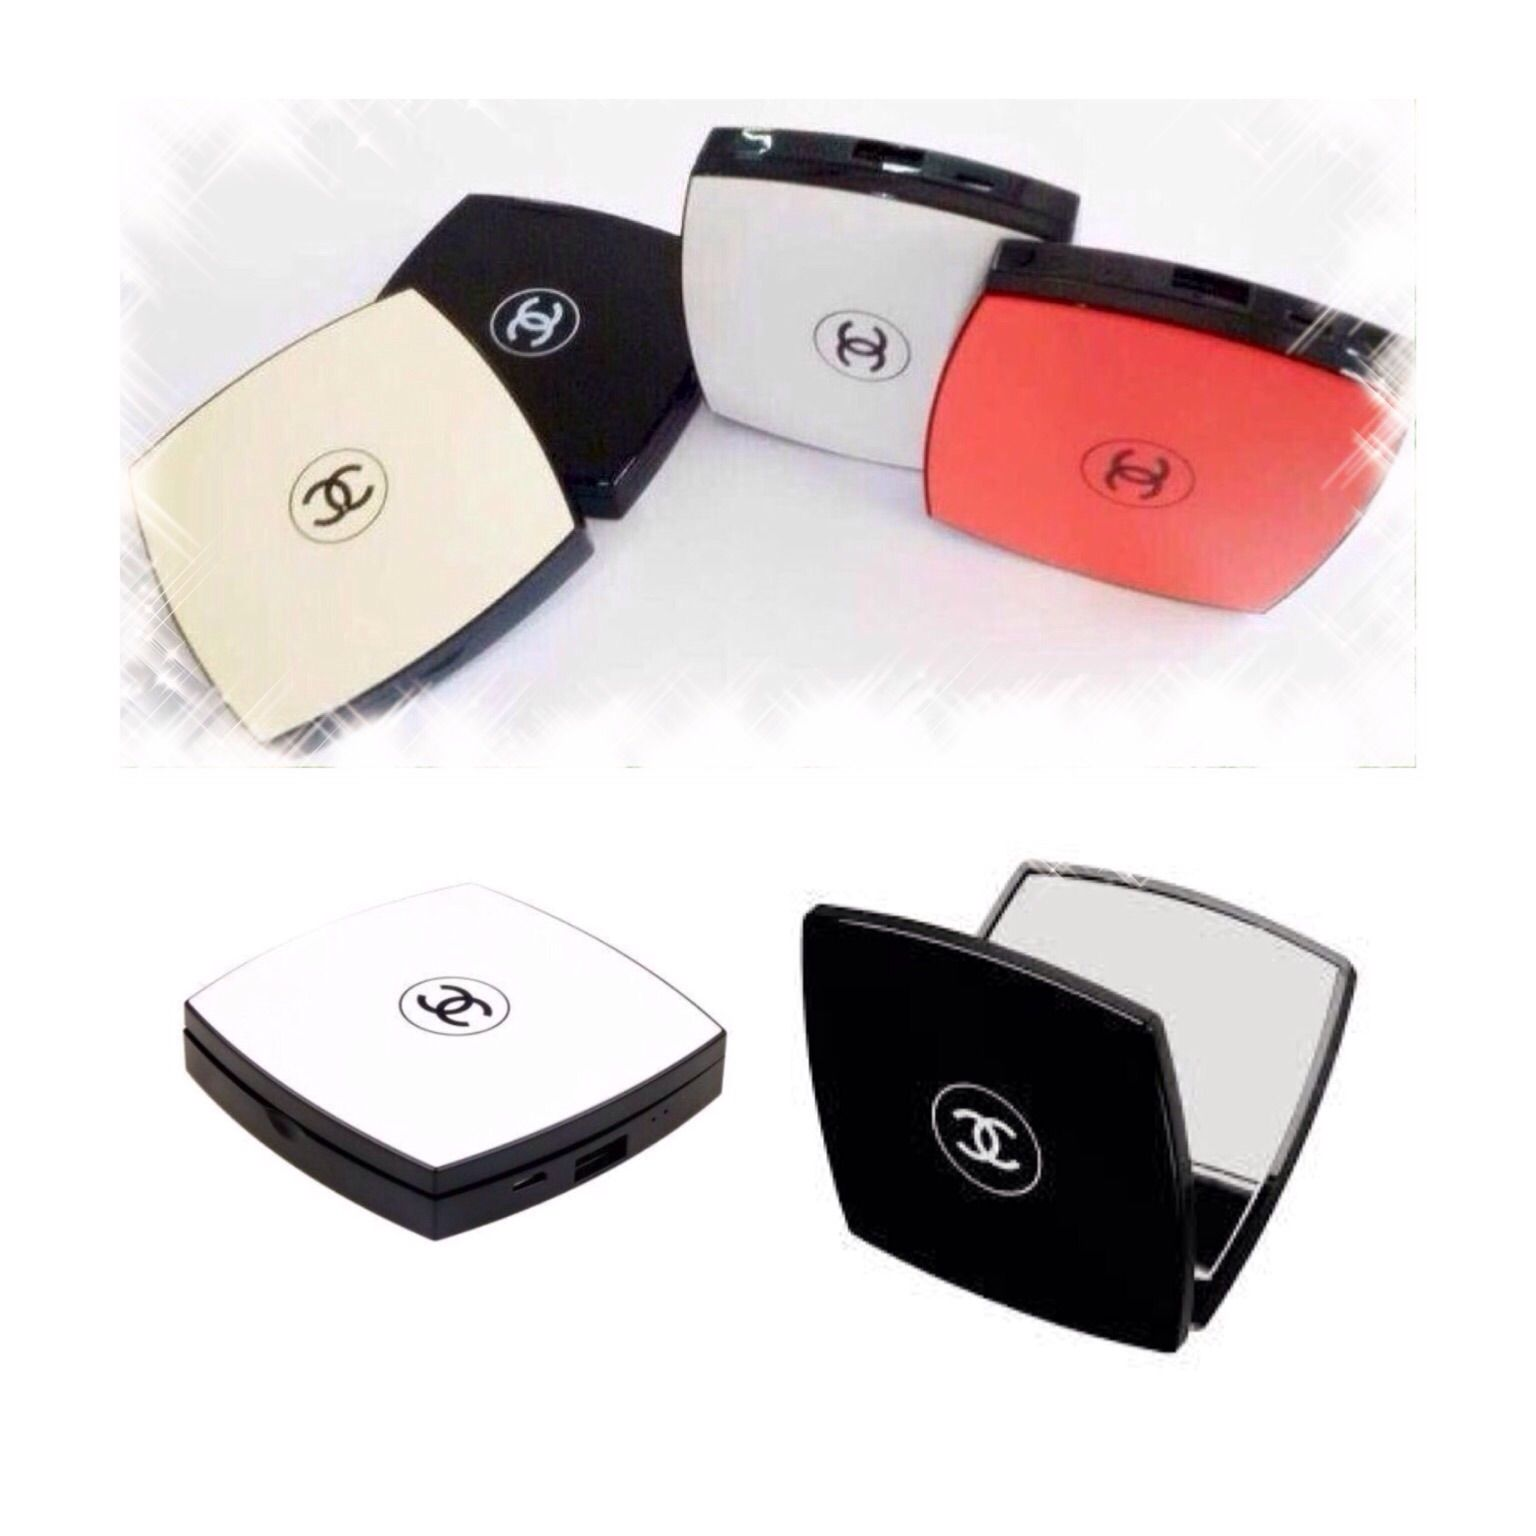 5000mah External Backup Battery Power Bank Can Charge Any Smart Phone Usb Ports Cute Design Of Chanel Chanel Compact Mirror Powerbank Compact Mirror